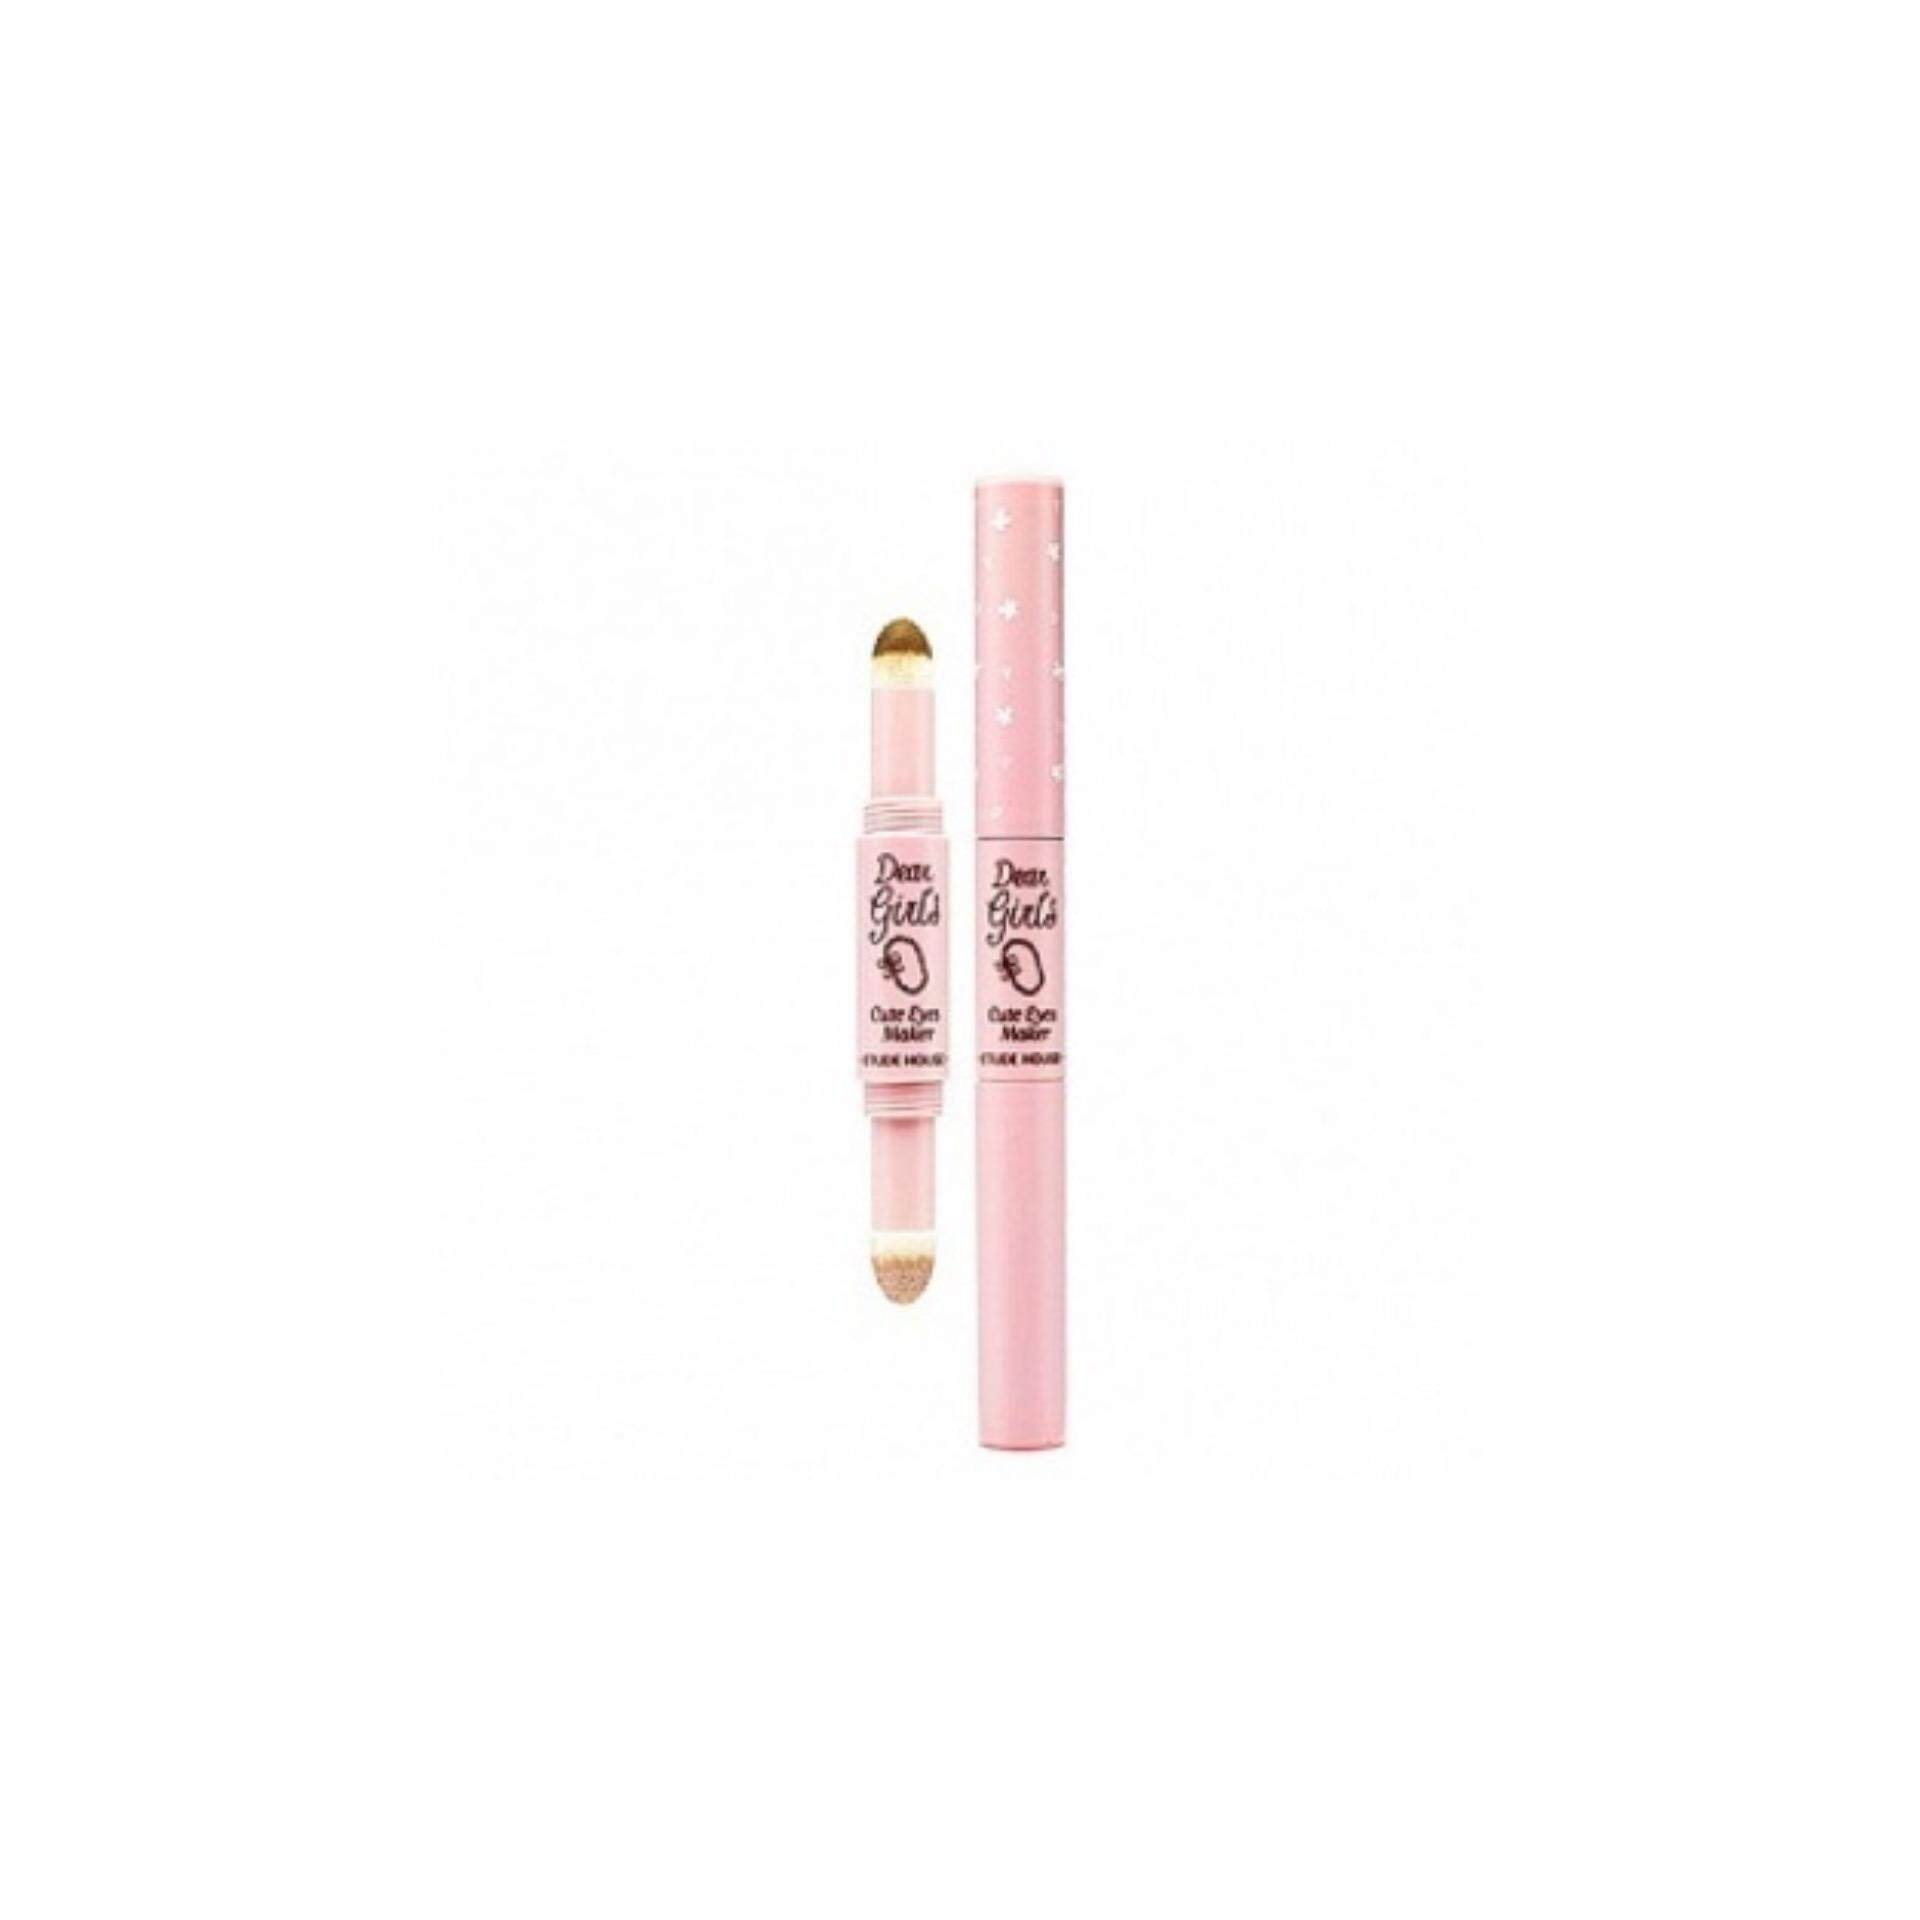 Etude House Dear Girls Cute Eyes Maker 0.9g